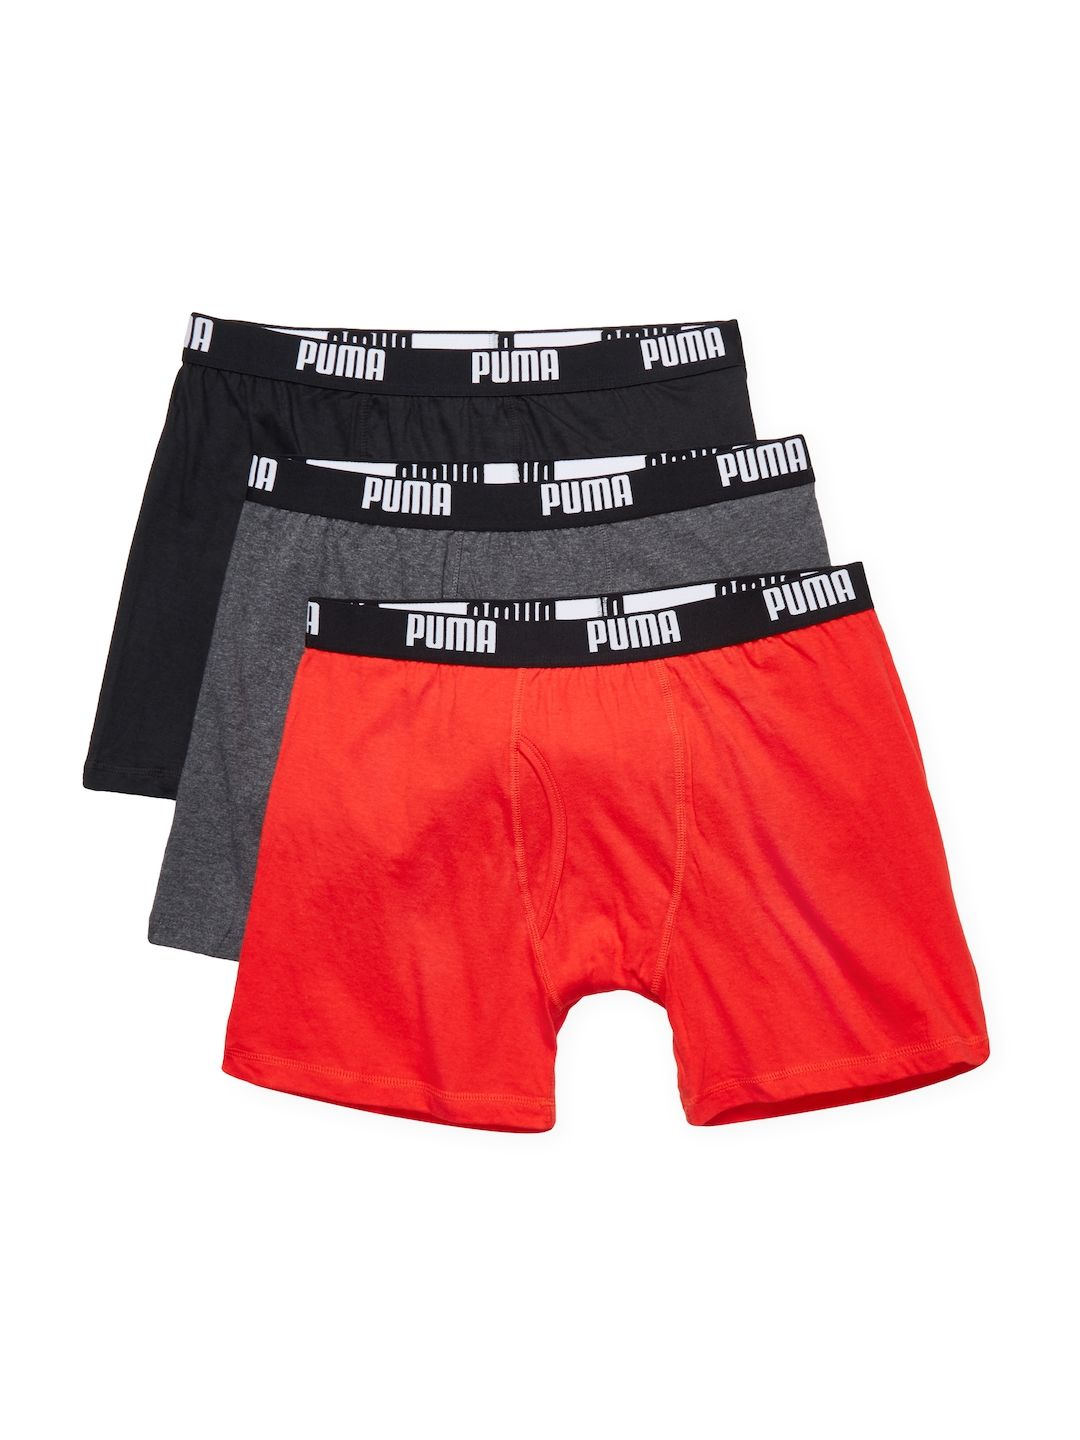 Puma Mens Cotton Volume Boxer Brief 3 Pk Red Size S